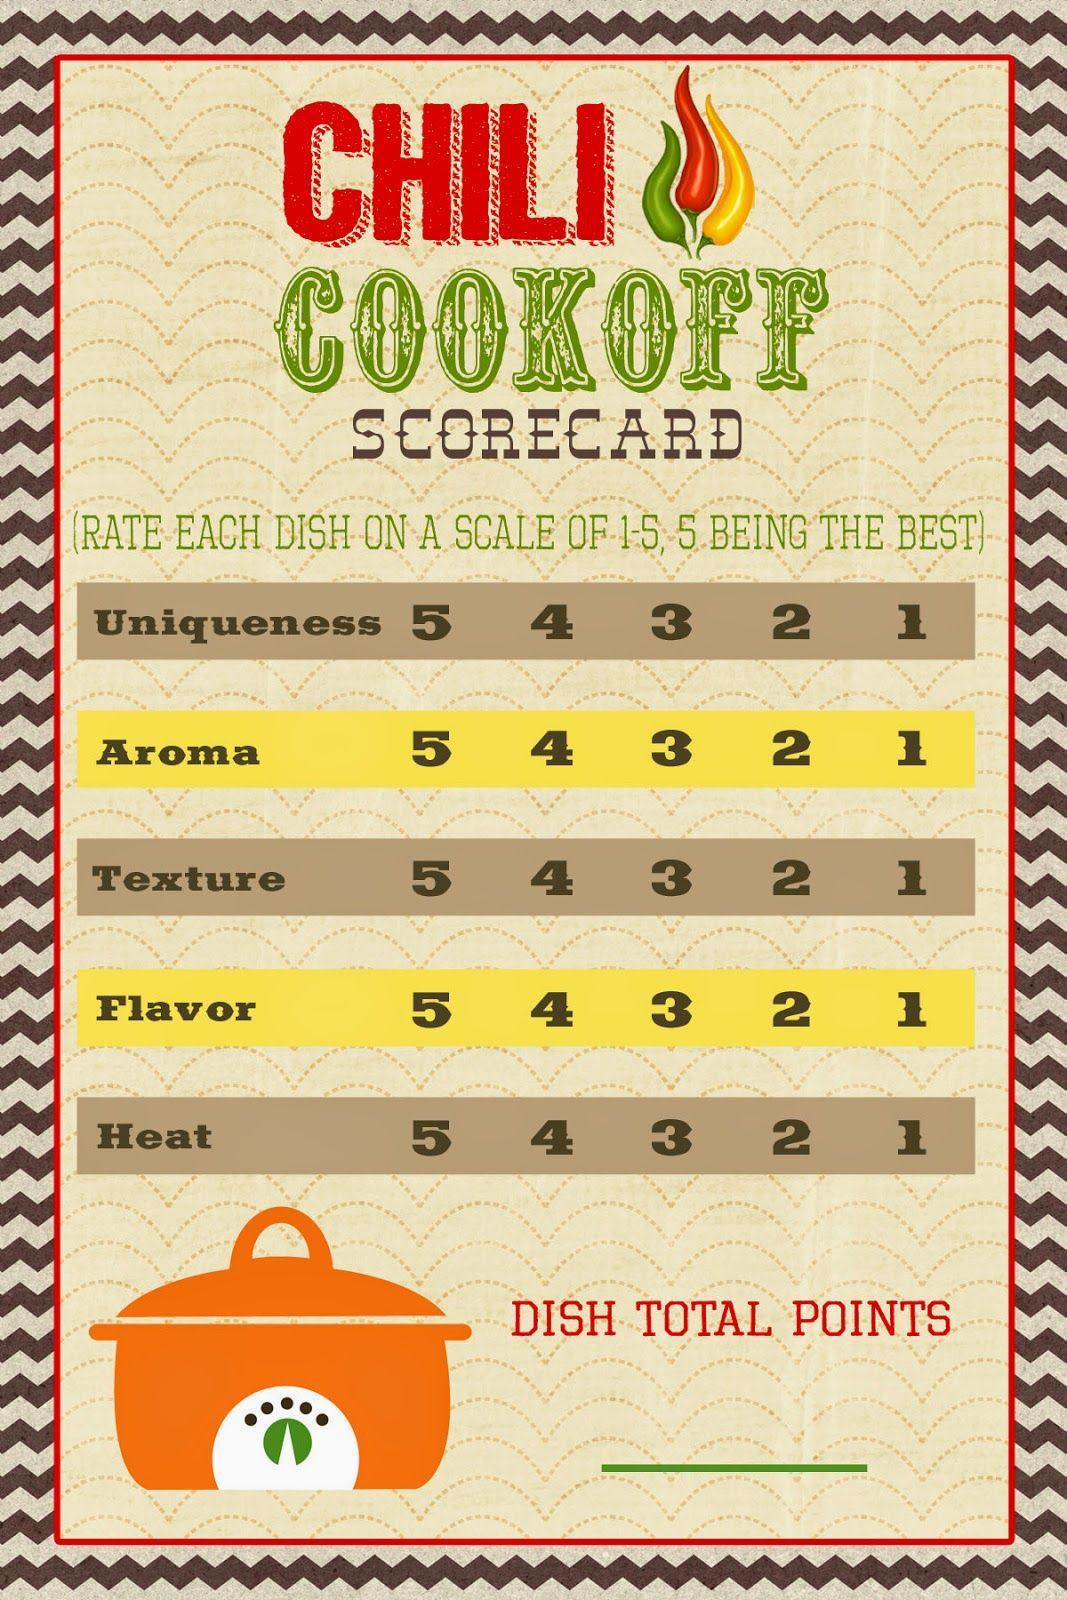 A pocket full of lds prints chili cook off scorecard for Honorable mention certificate template